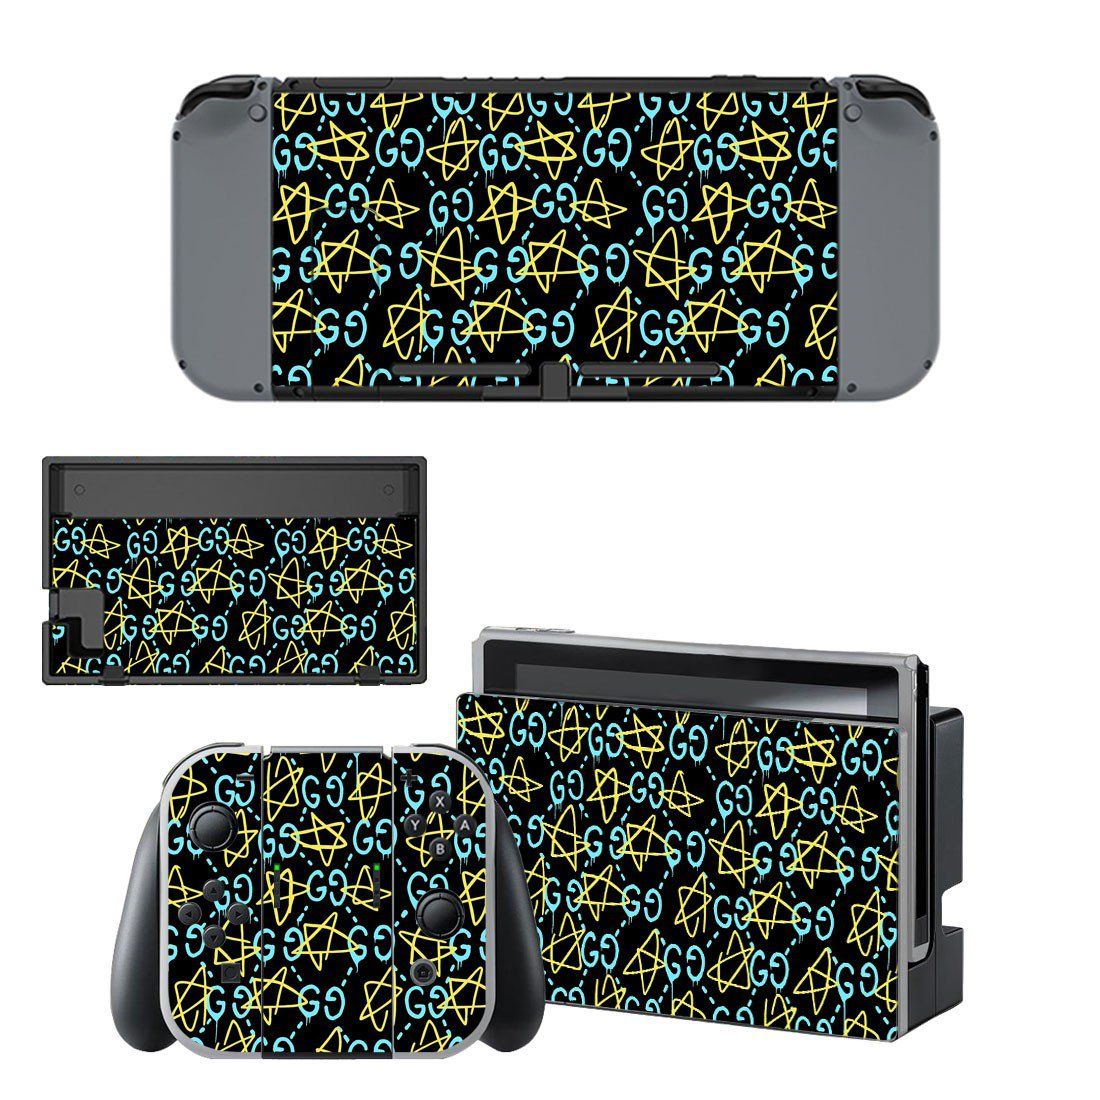 Pentagram decal skin sticker for Nintendo Switch console and controllers